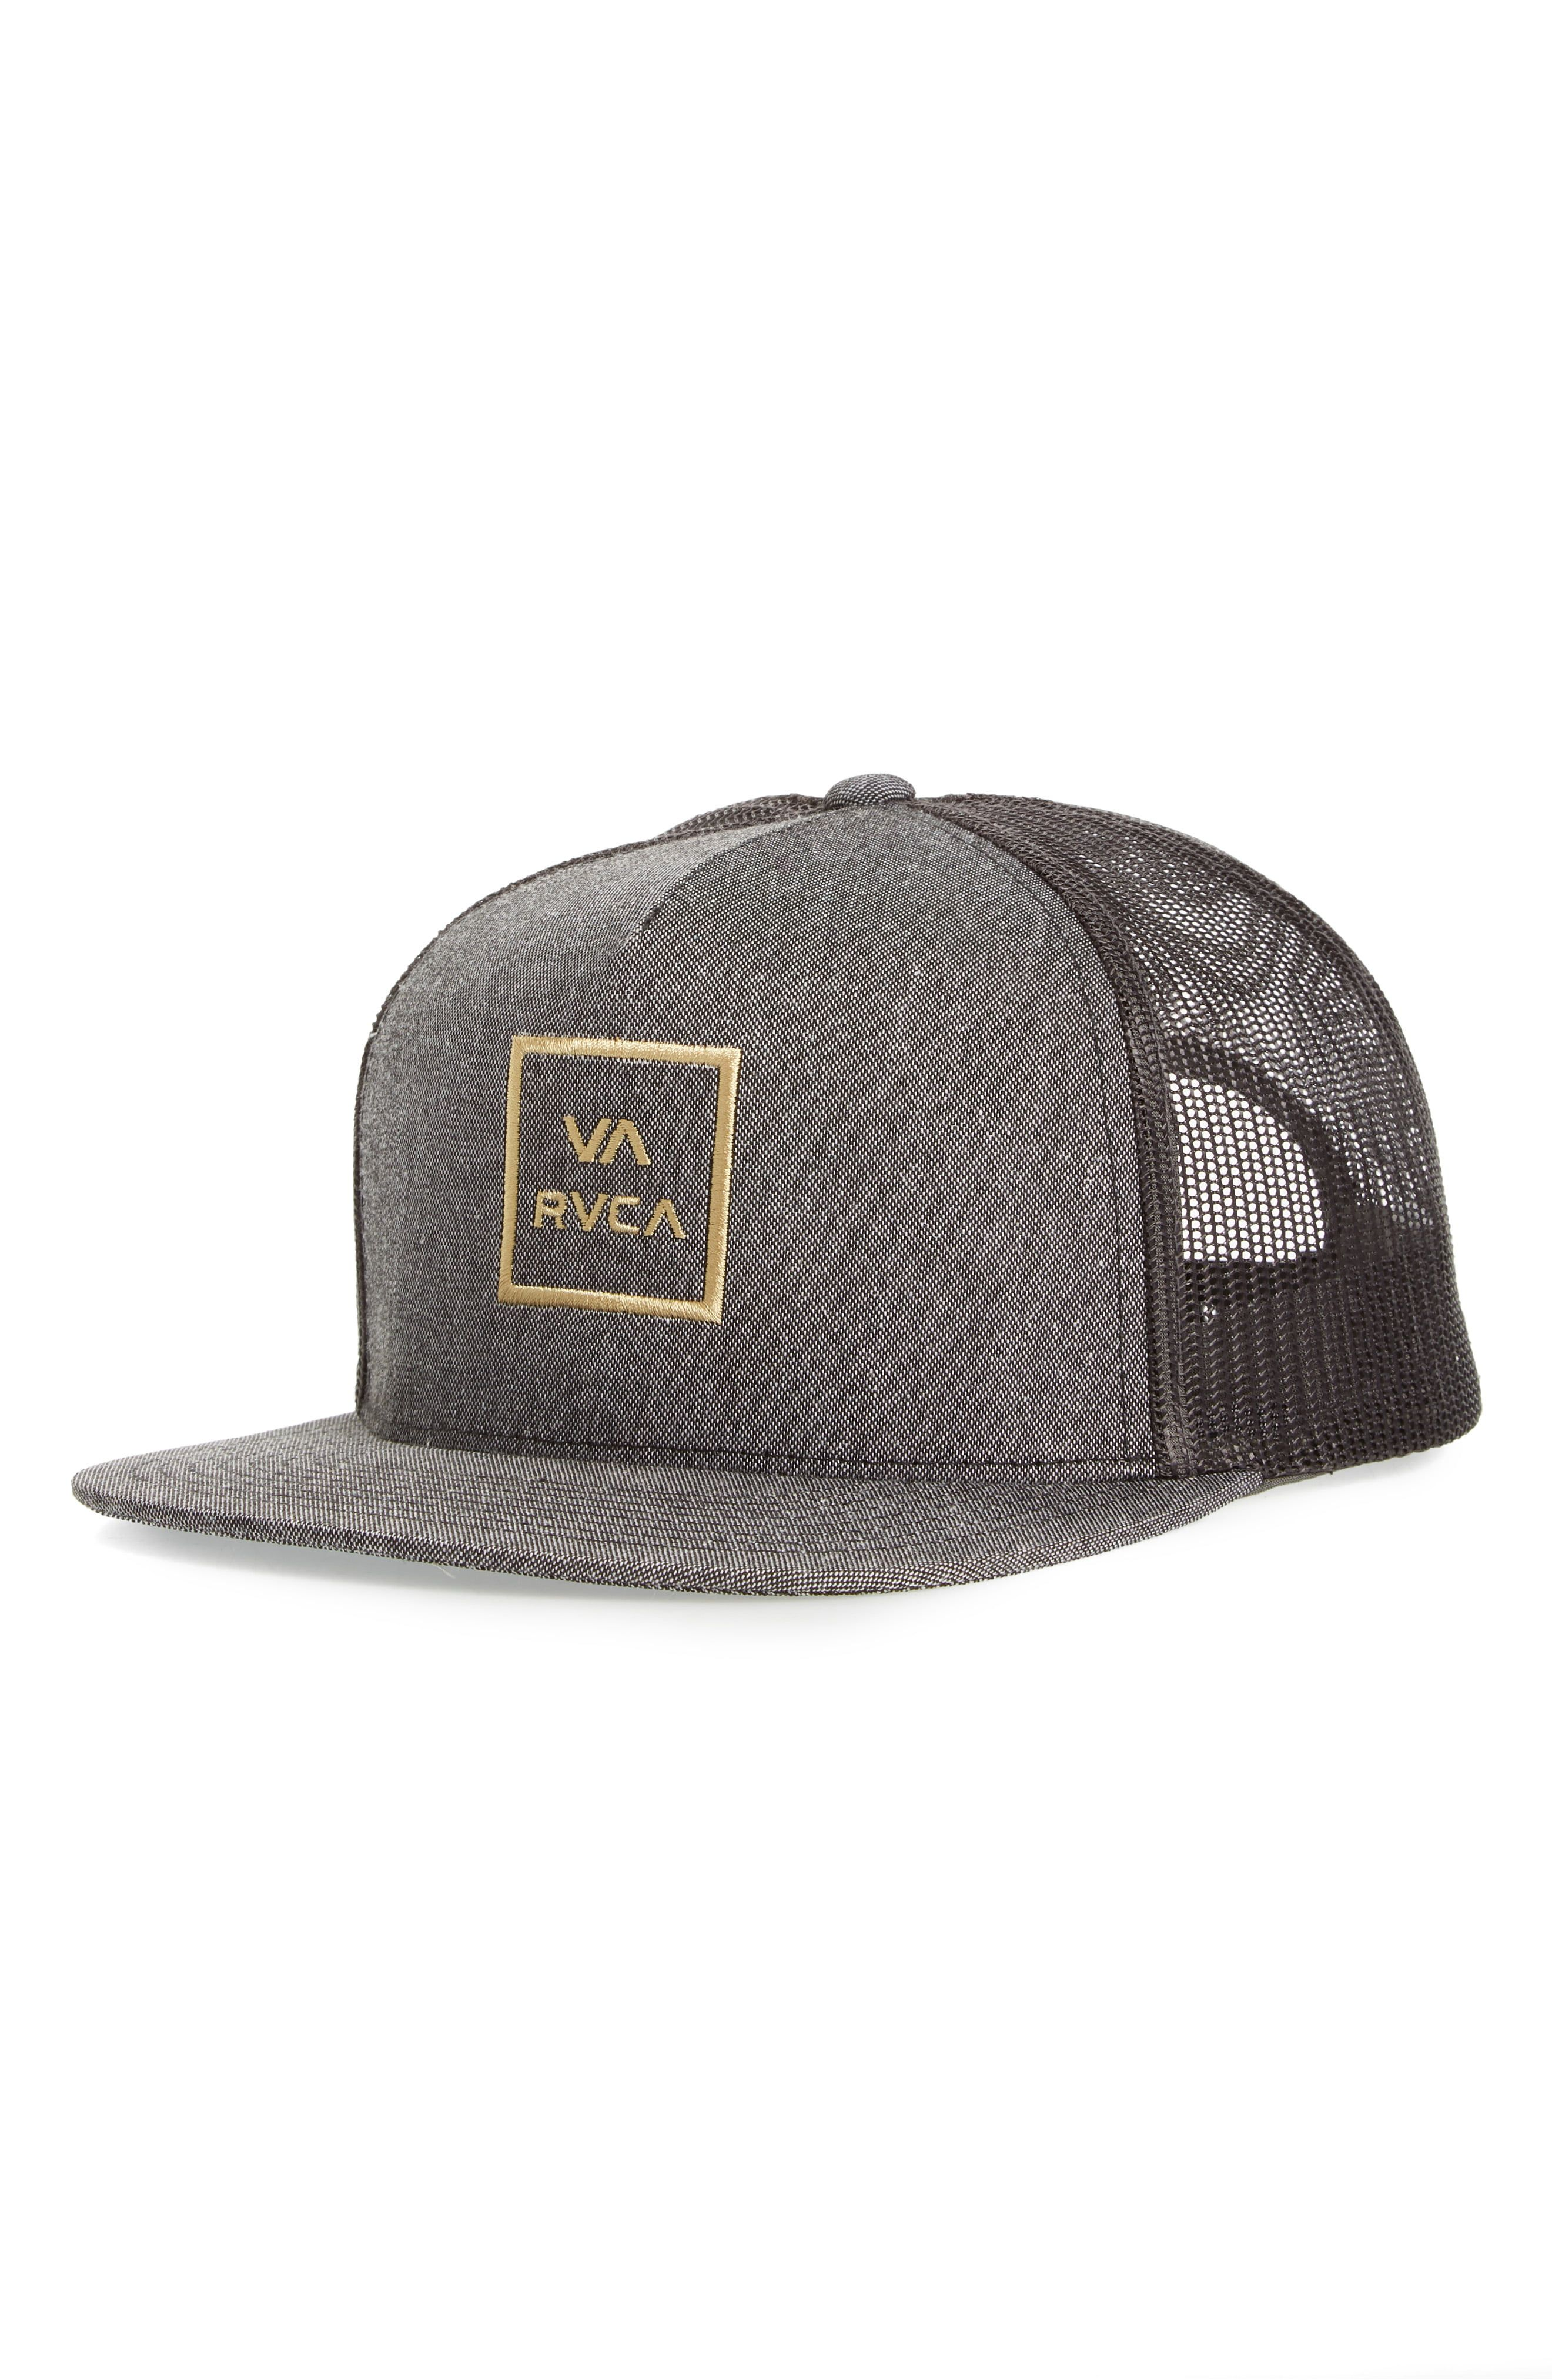 fcda2659c0c520 RVCA VA All the Way Trucker Hat in 2019   Products   Hats, All The ...